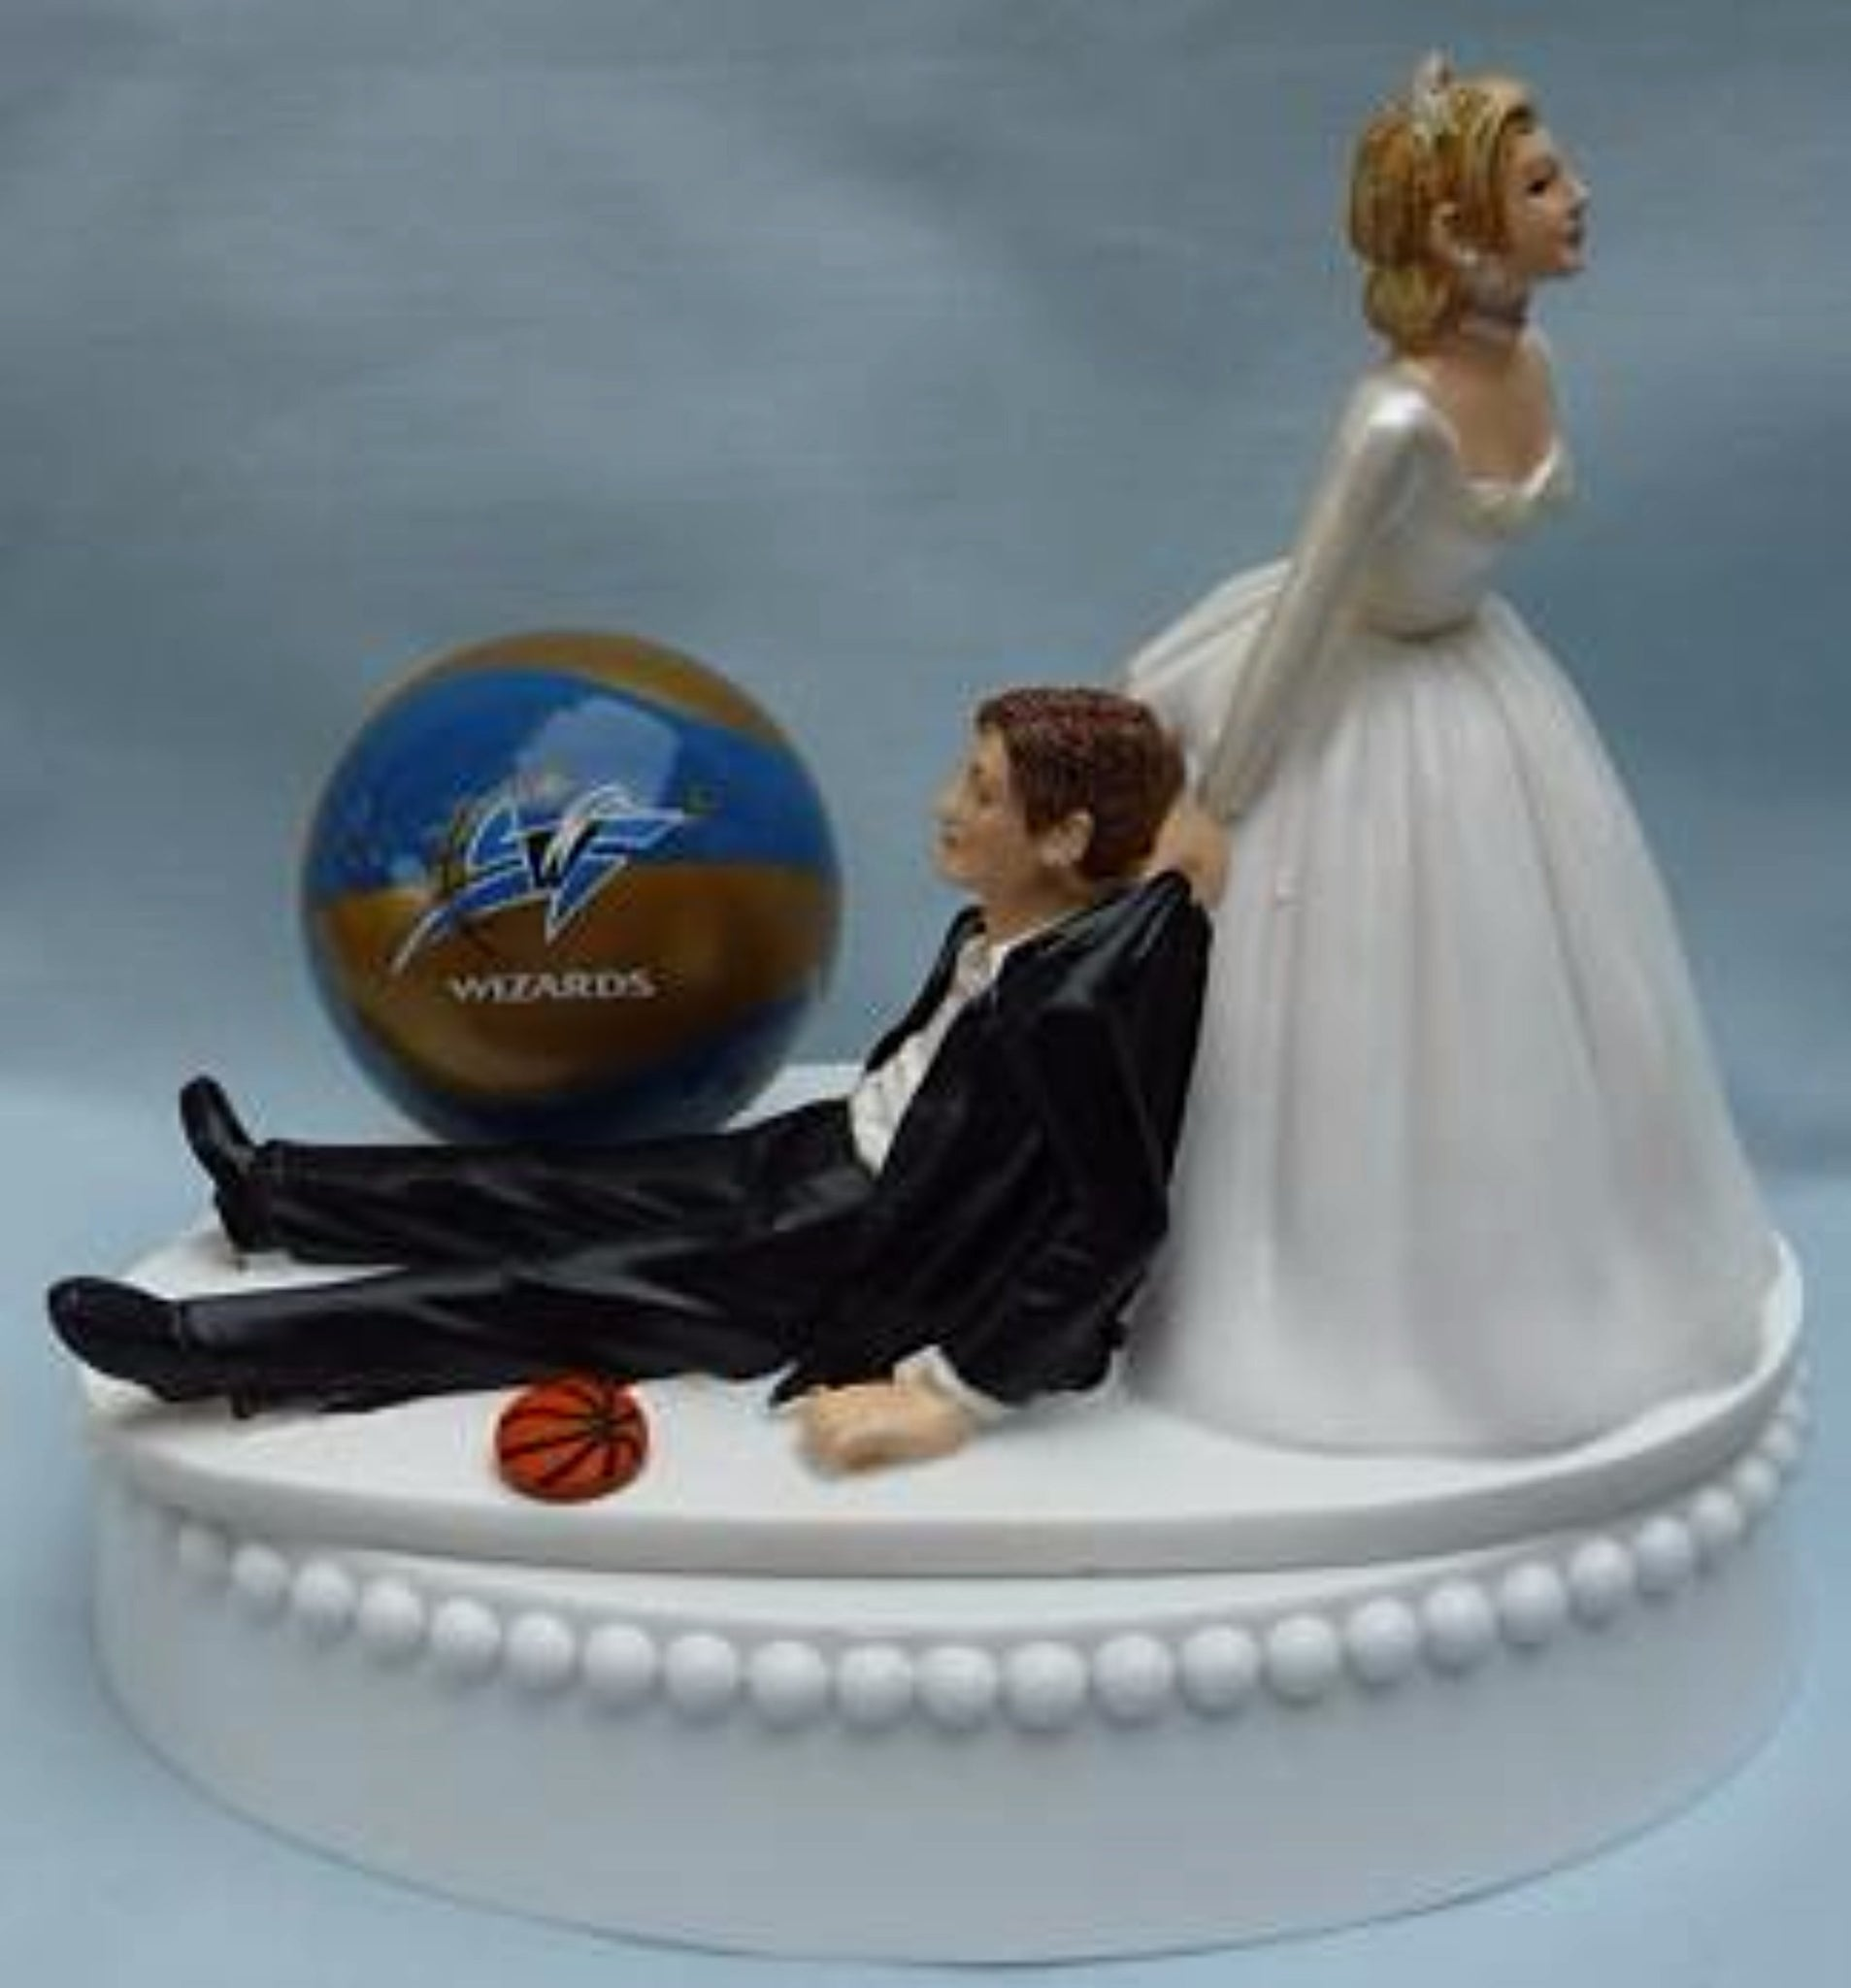 Washington Wizards wedding cake topper NBA basketball sports fans bride groom's cake top fun humorous FunWeddingThings.com unique original